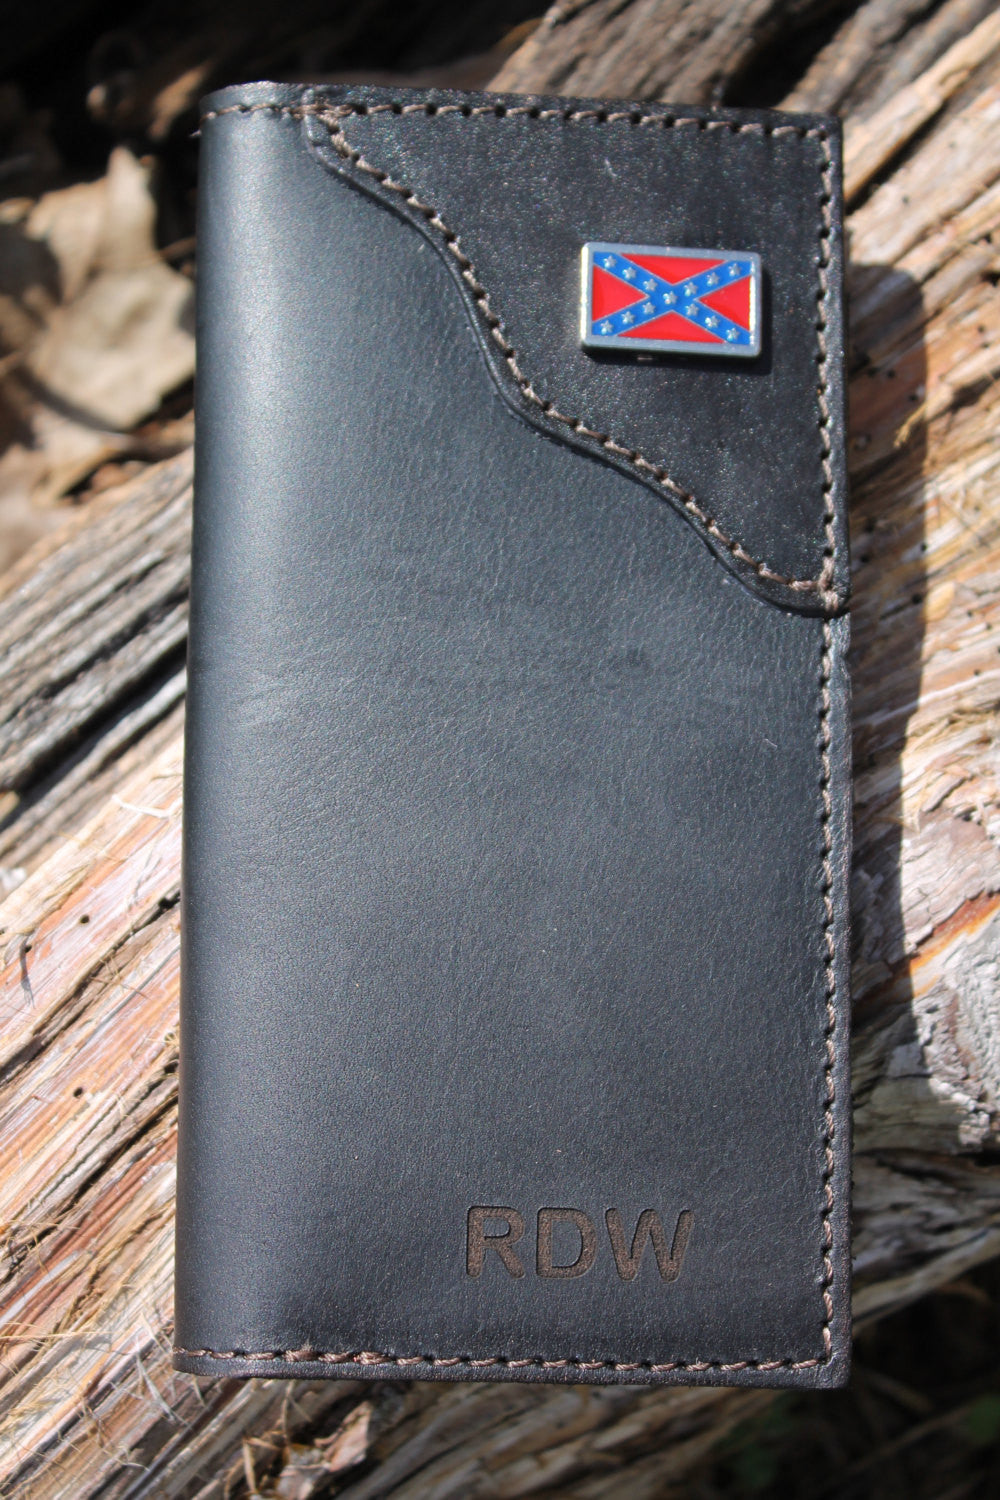 Roper Checkbook Wallet BLACK on BLACK Leather with Rebel Flag Concho--Initials Engraved Free!